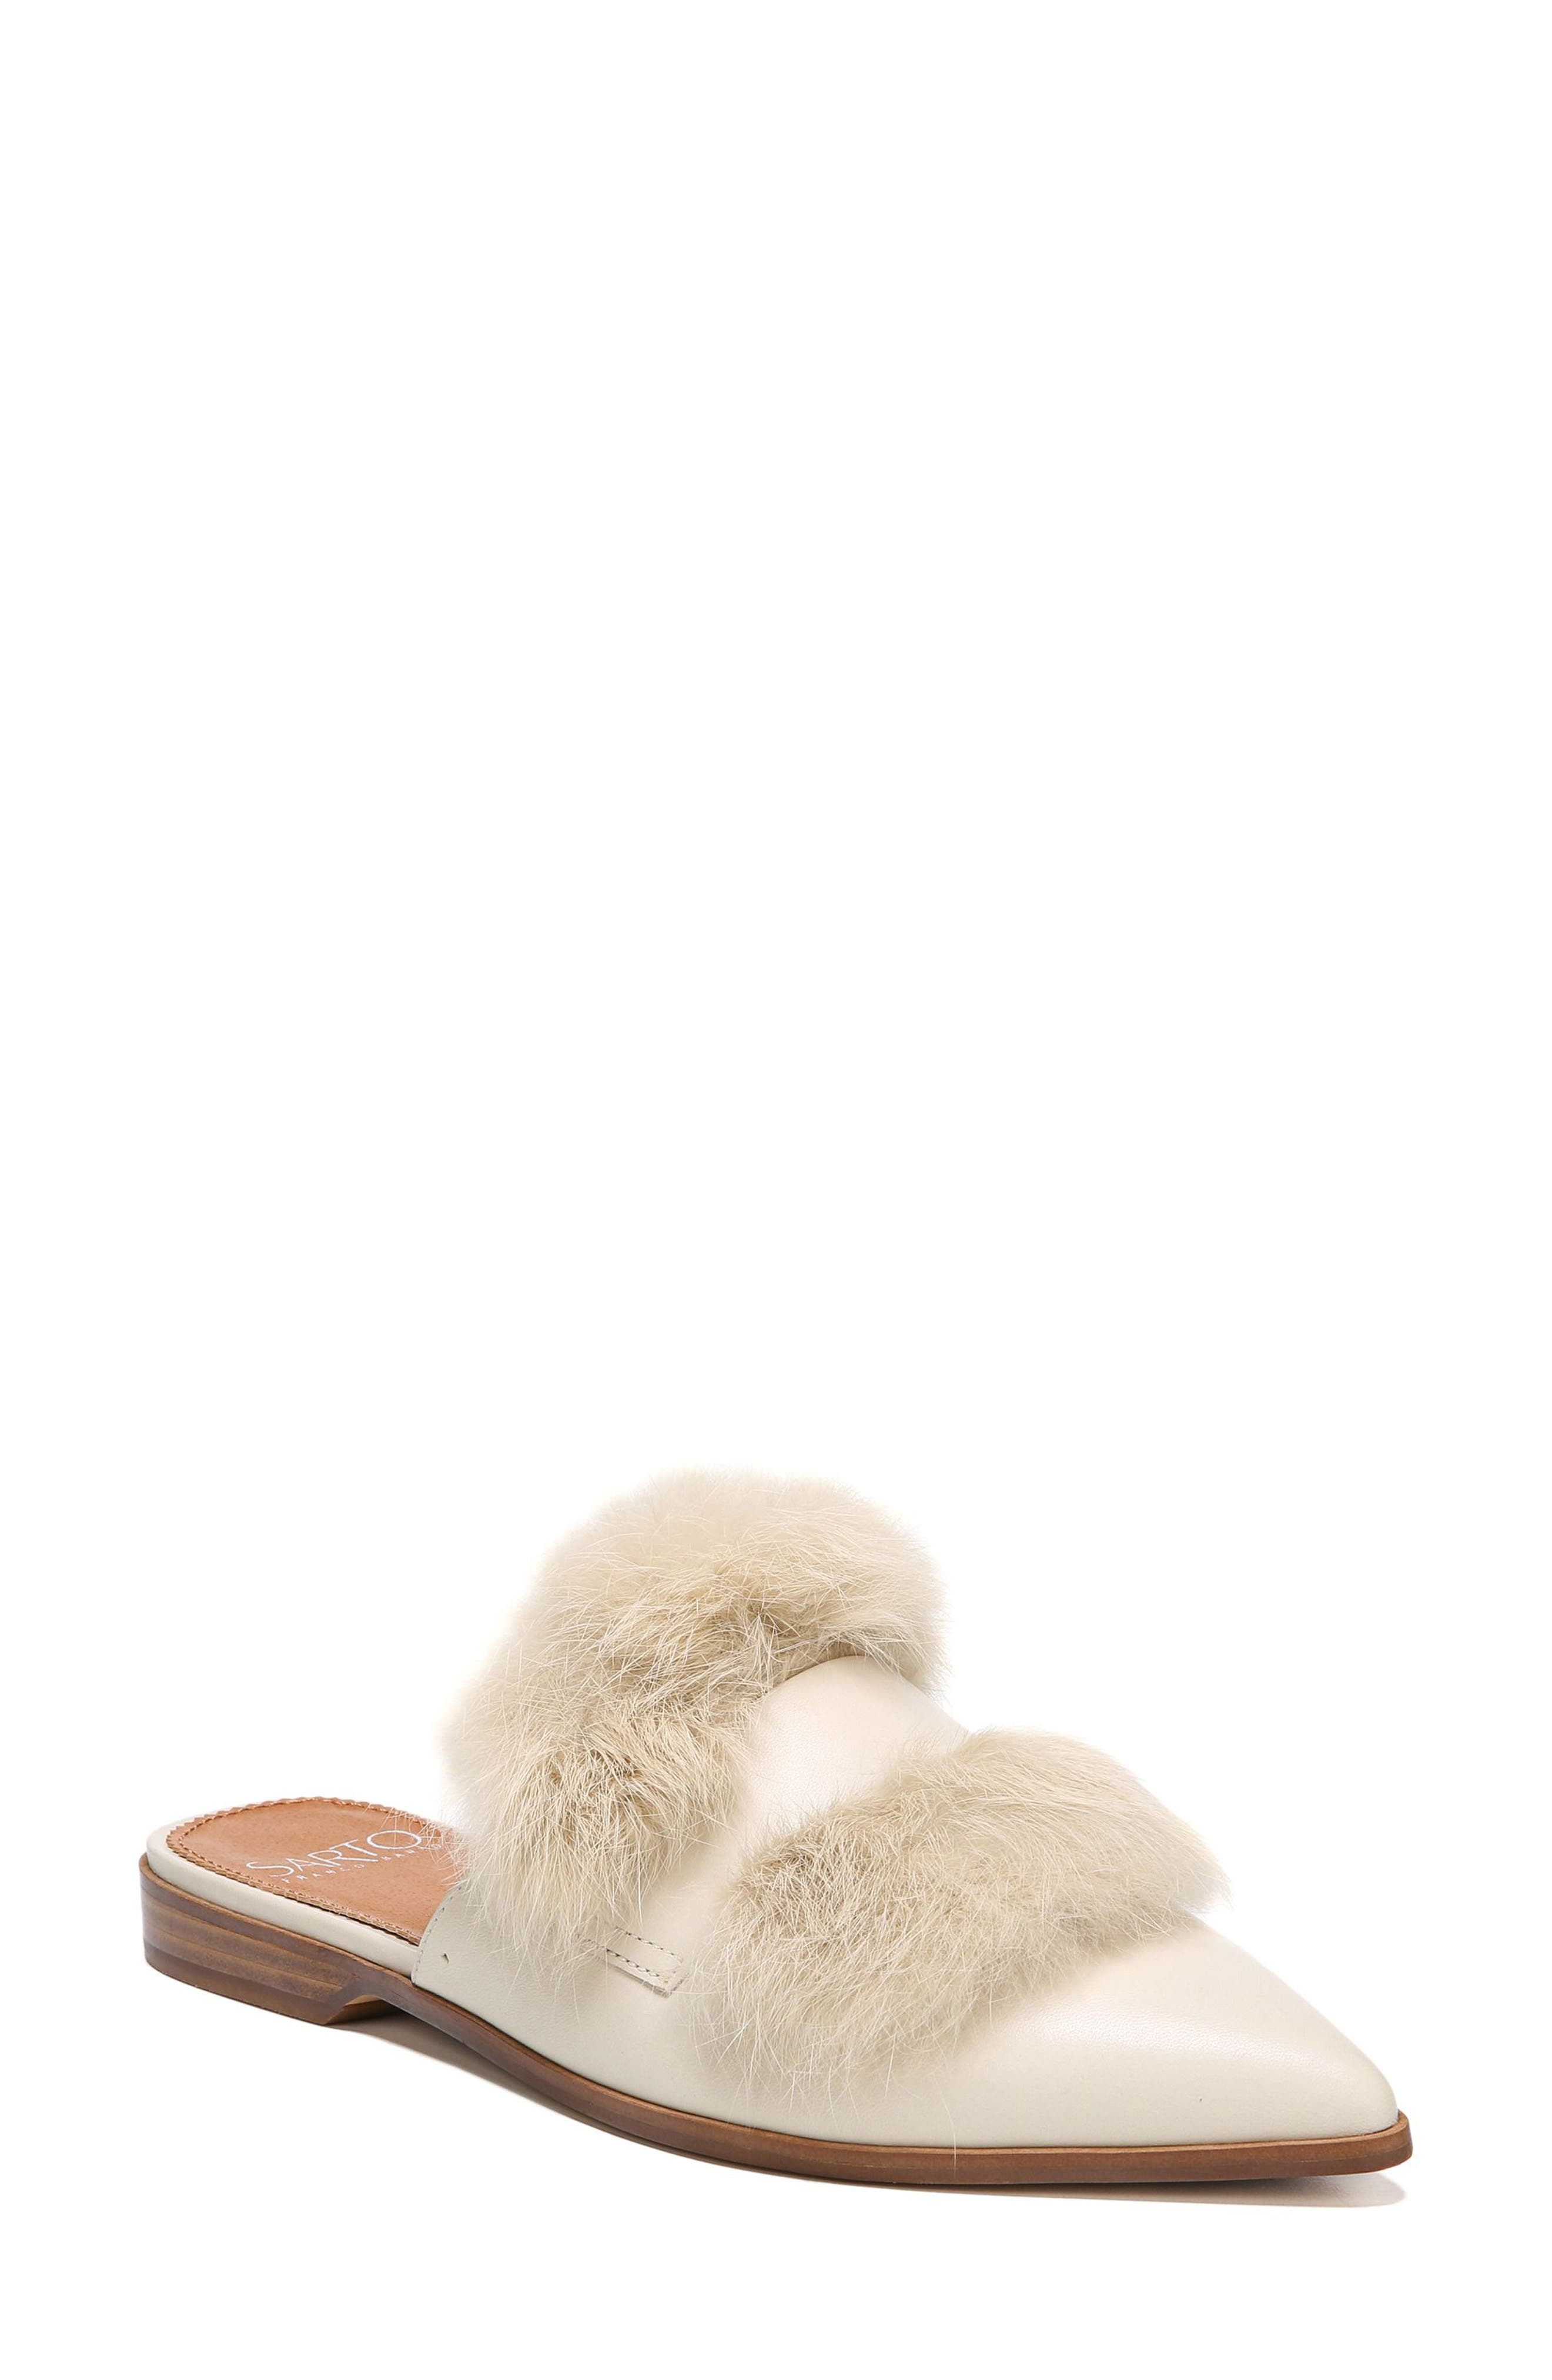 Palmer II Genuine Rabbit Fur Slide,                             Main thumbnail 1, color,                             Winter White Leather